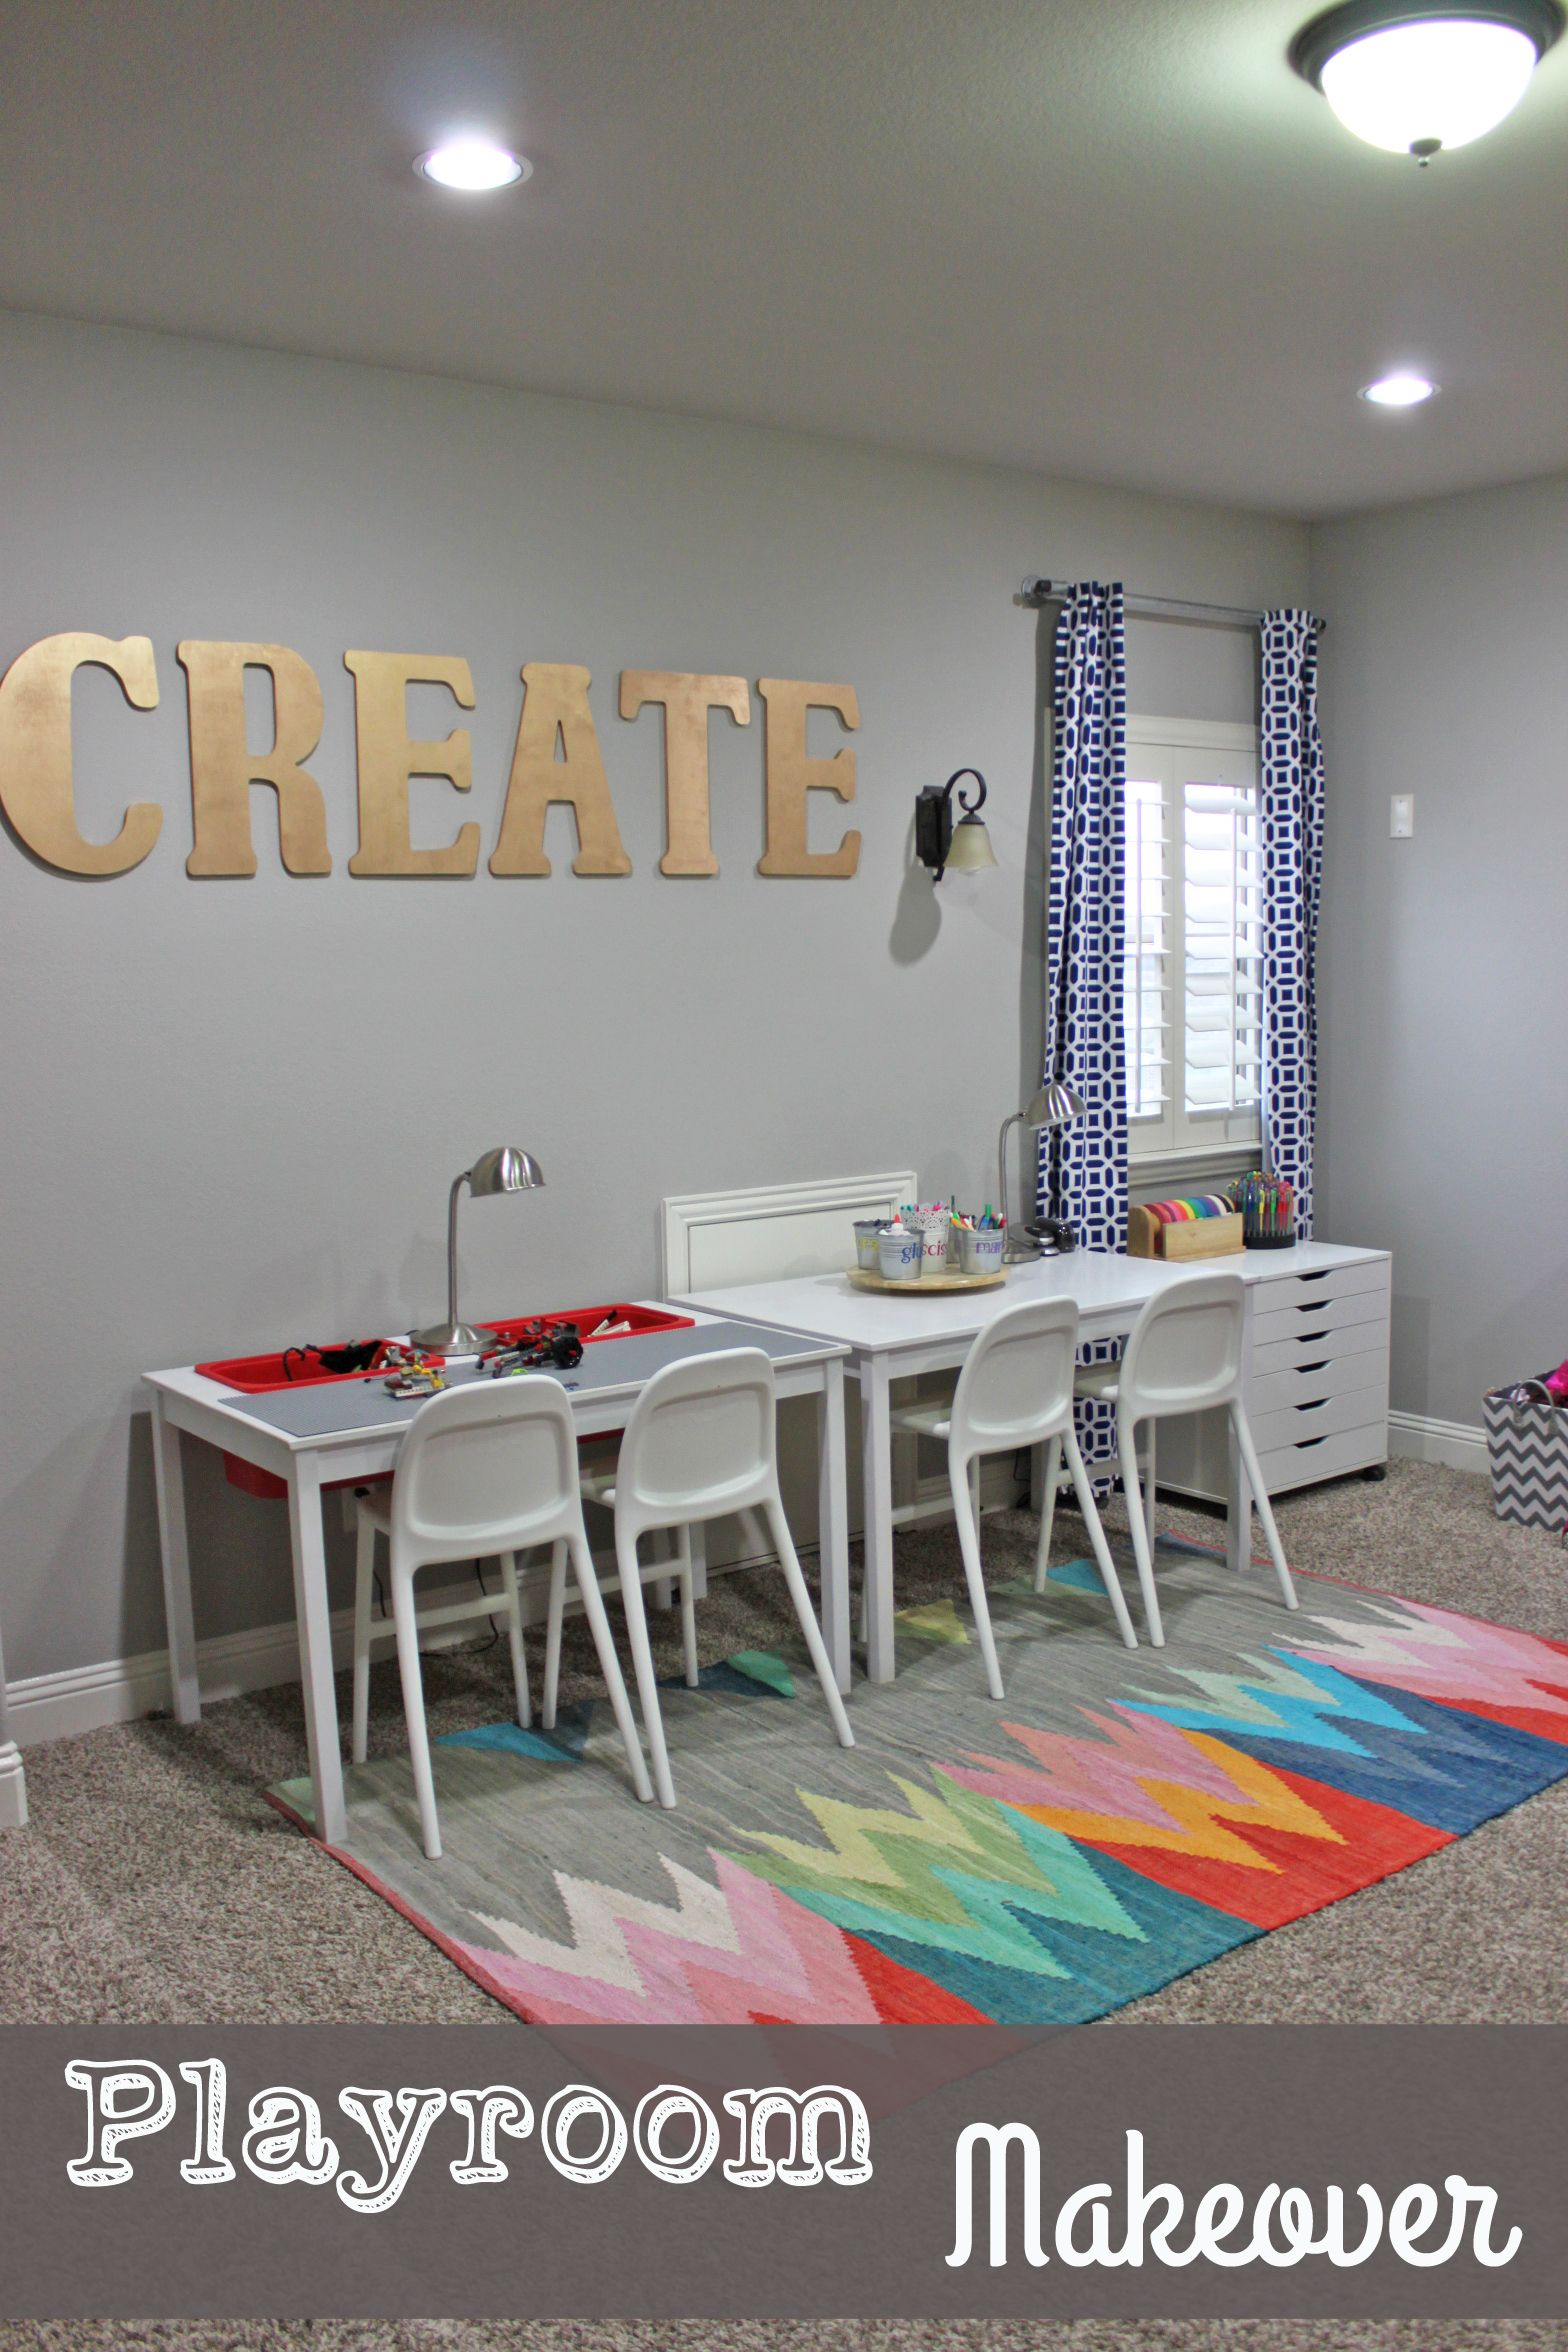 Playroom Makeover! Art Center, Lego Table, Dress Up Storage, And